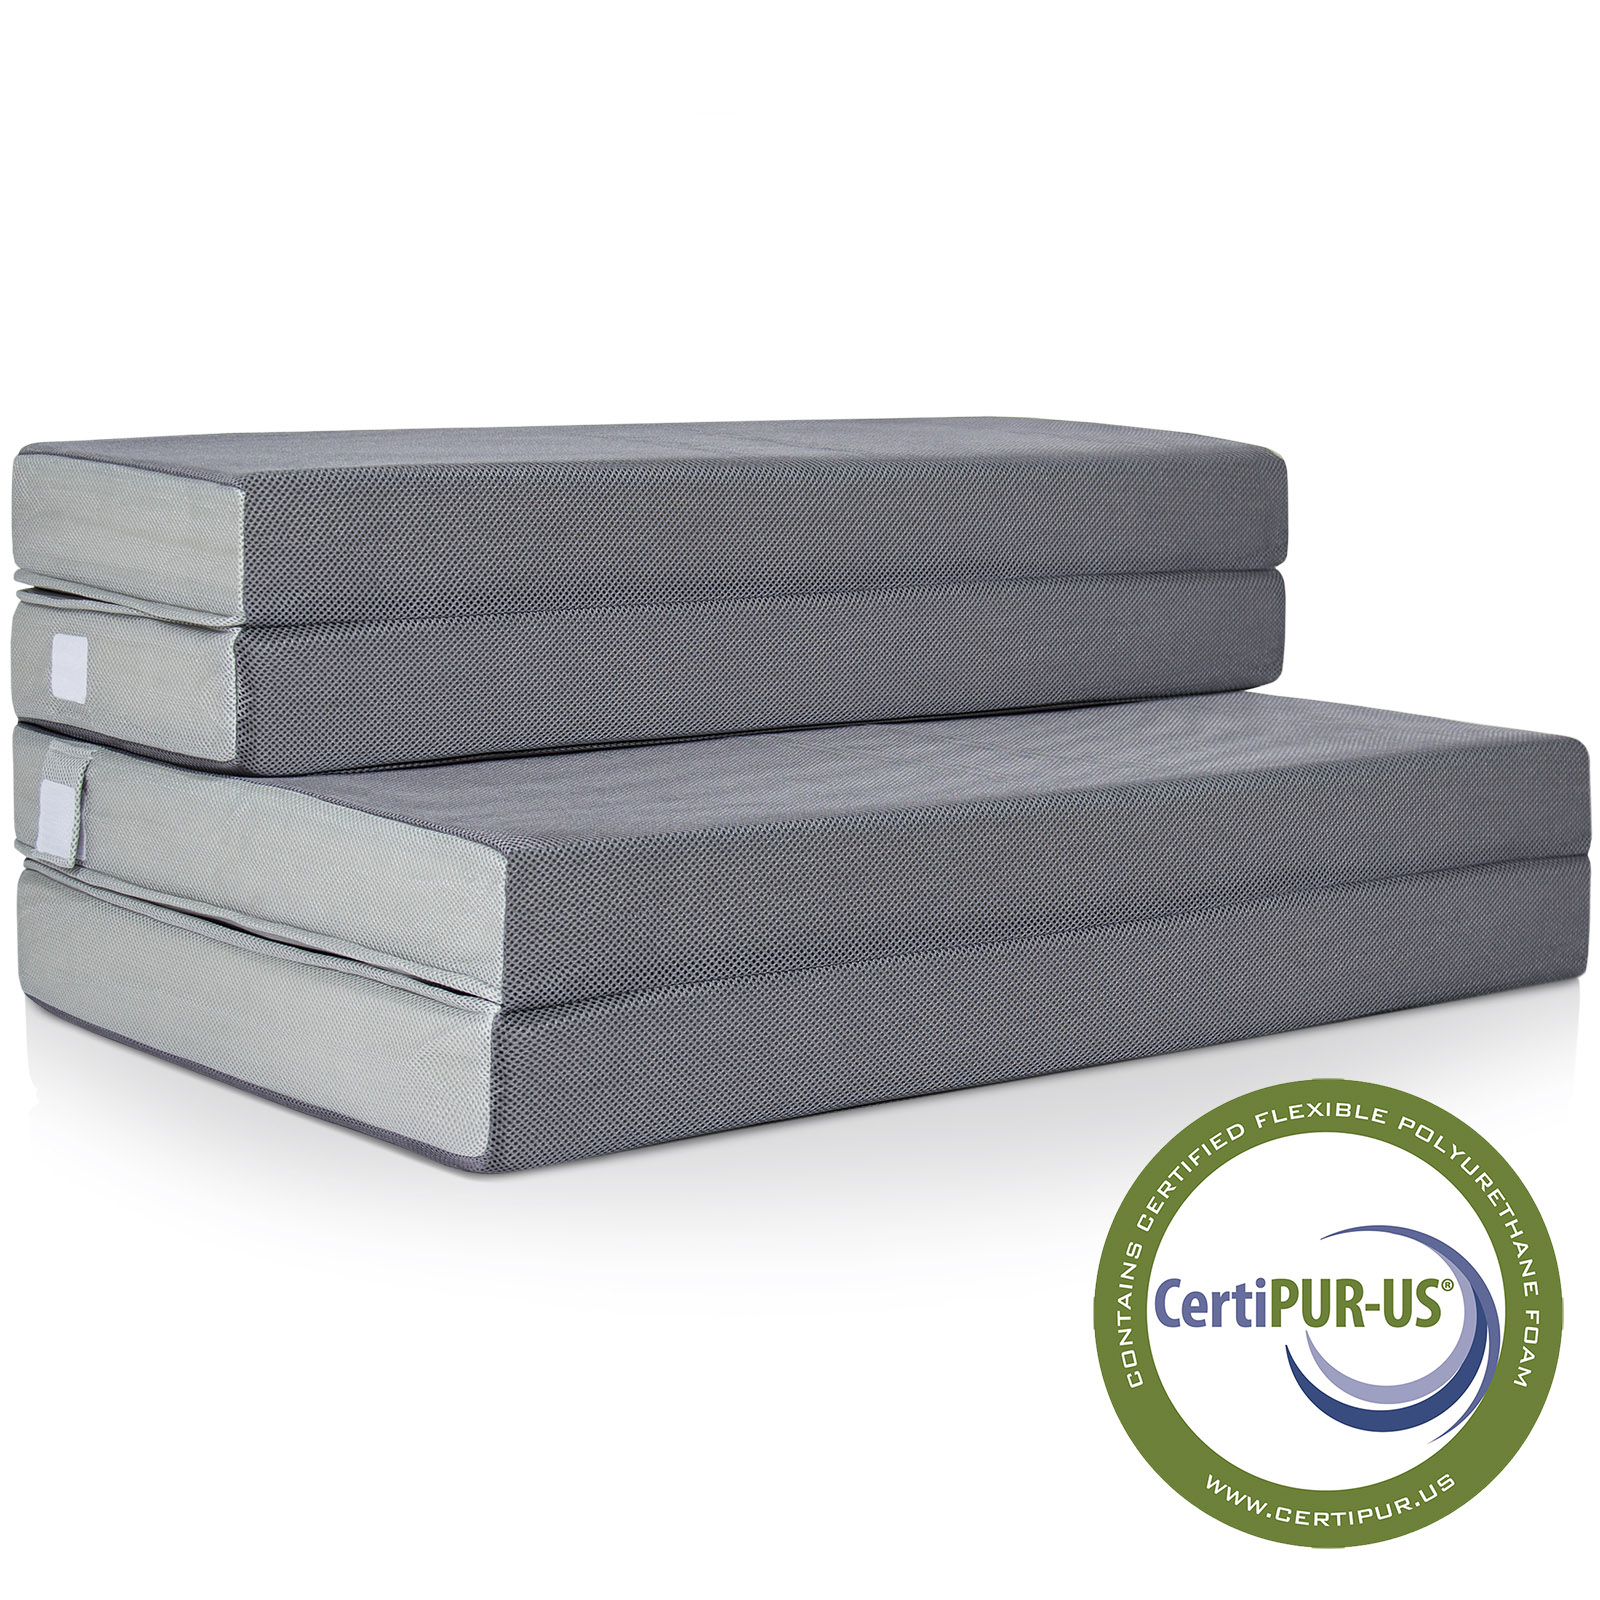 Best Choice Products 4in Thick Folding Portable Queen Mattress Topper w/ High-Density Foam, Washable Cover